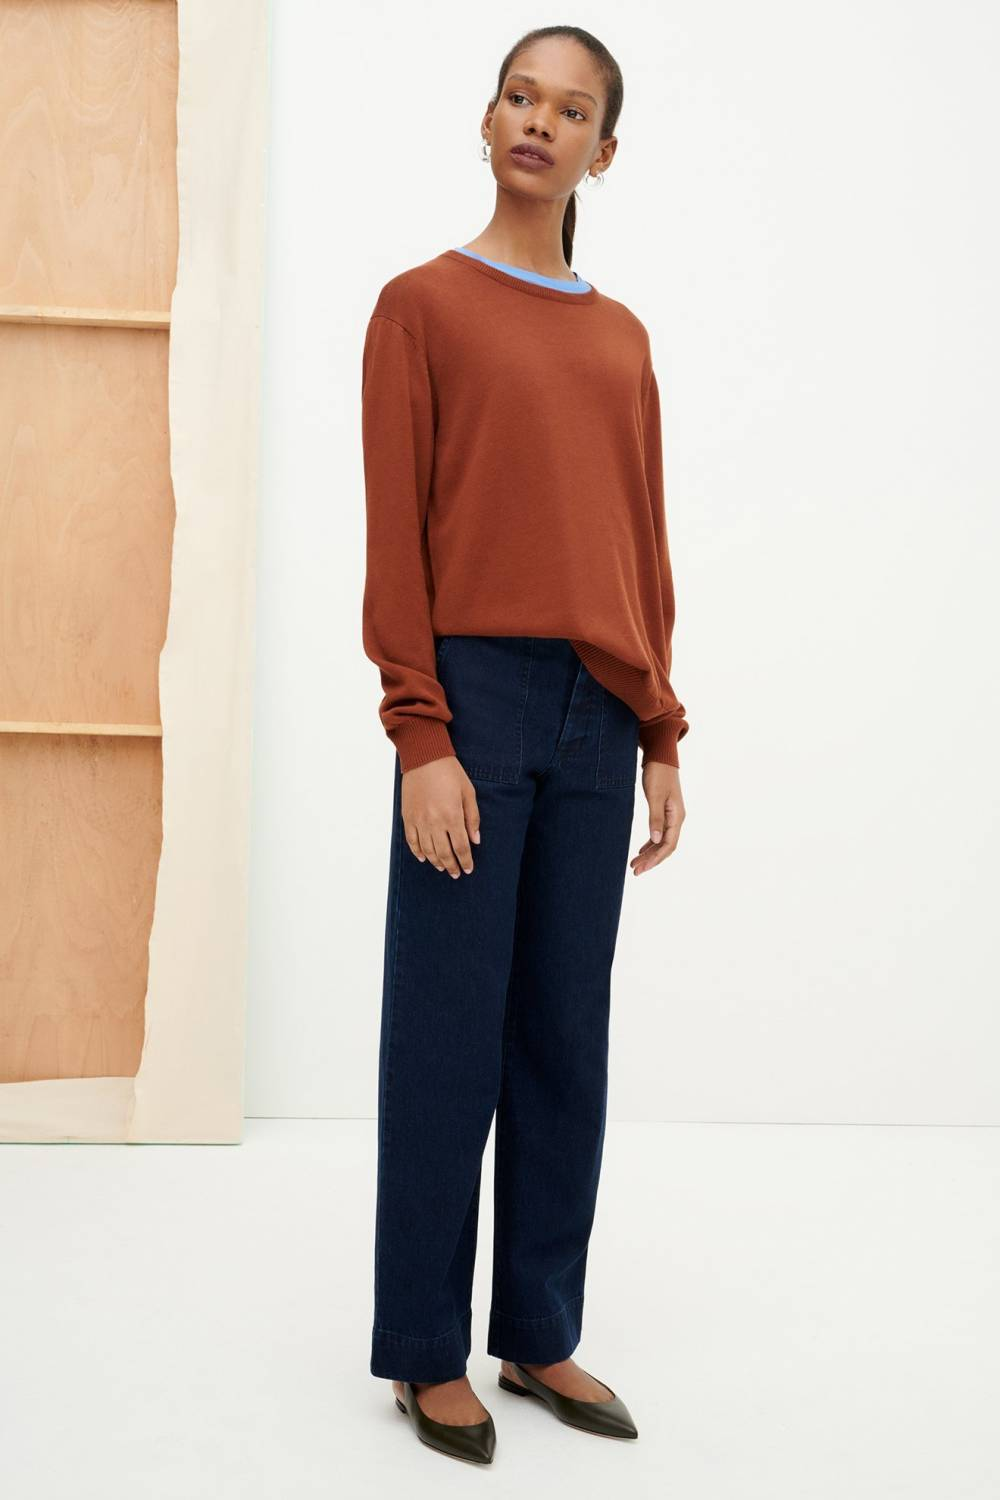 kowtow ethical 30 year old clothes